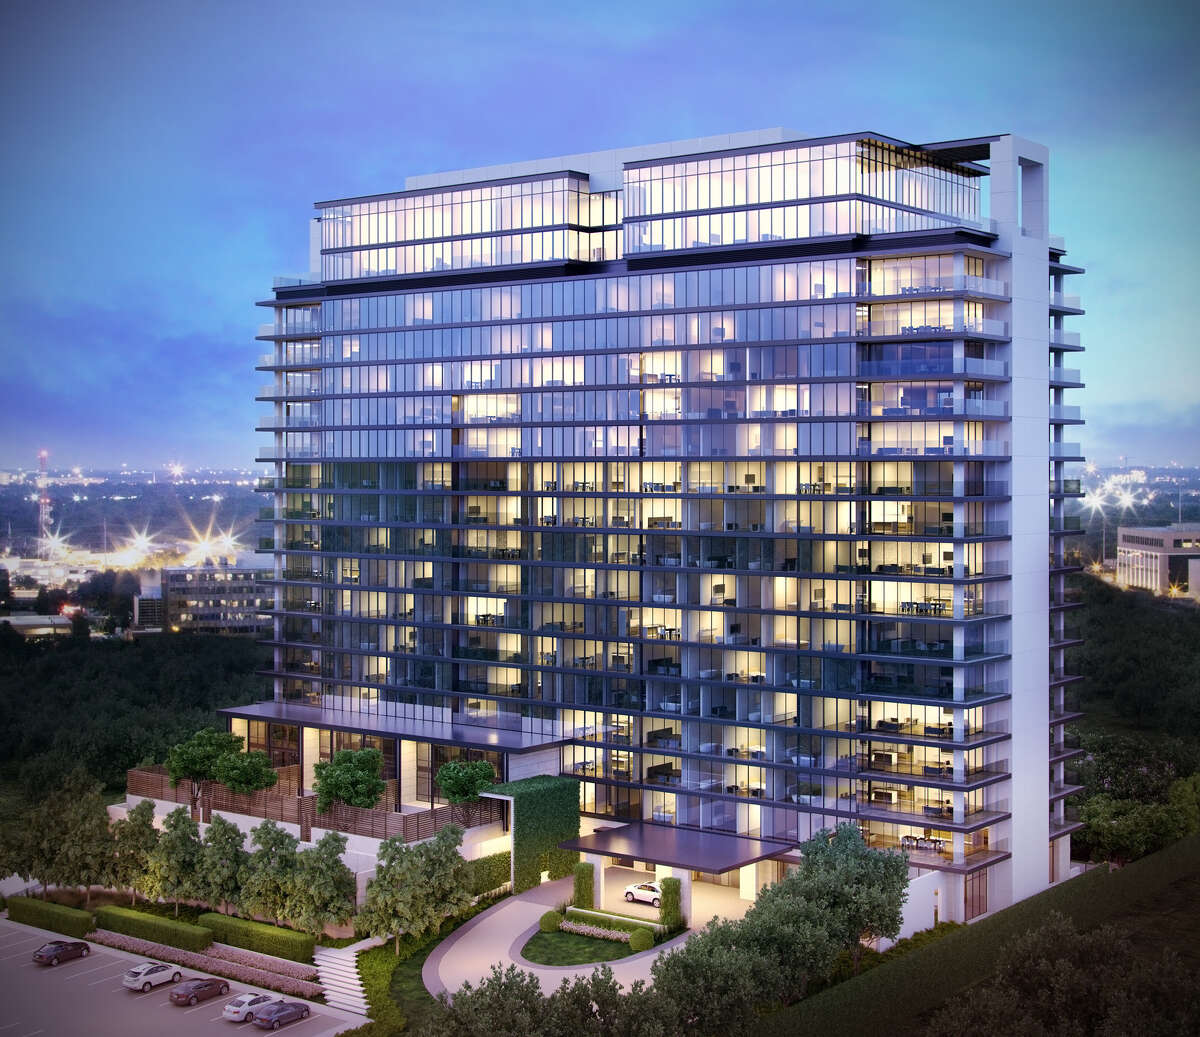 New York-based Arel Capital is restoring the 17-story River Oaks high-rise into luxury condominiums.